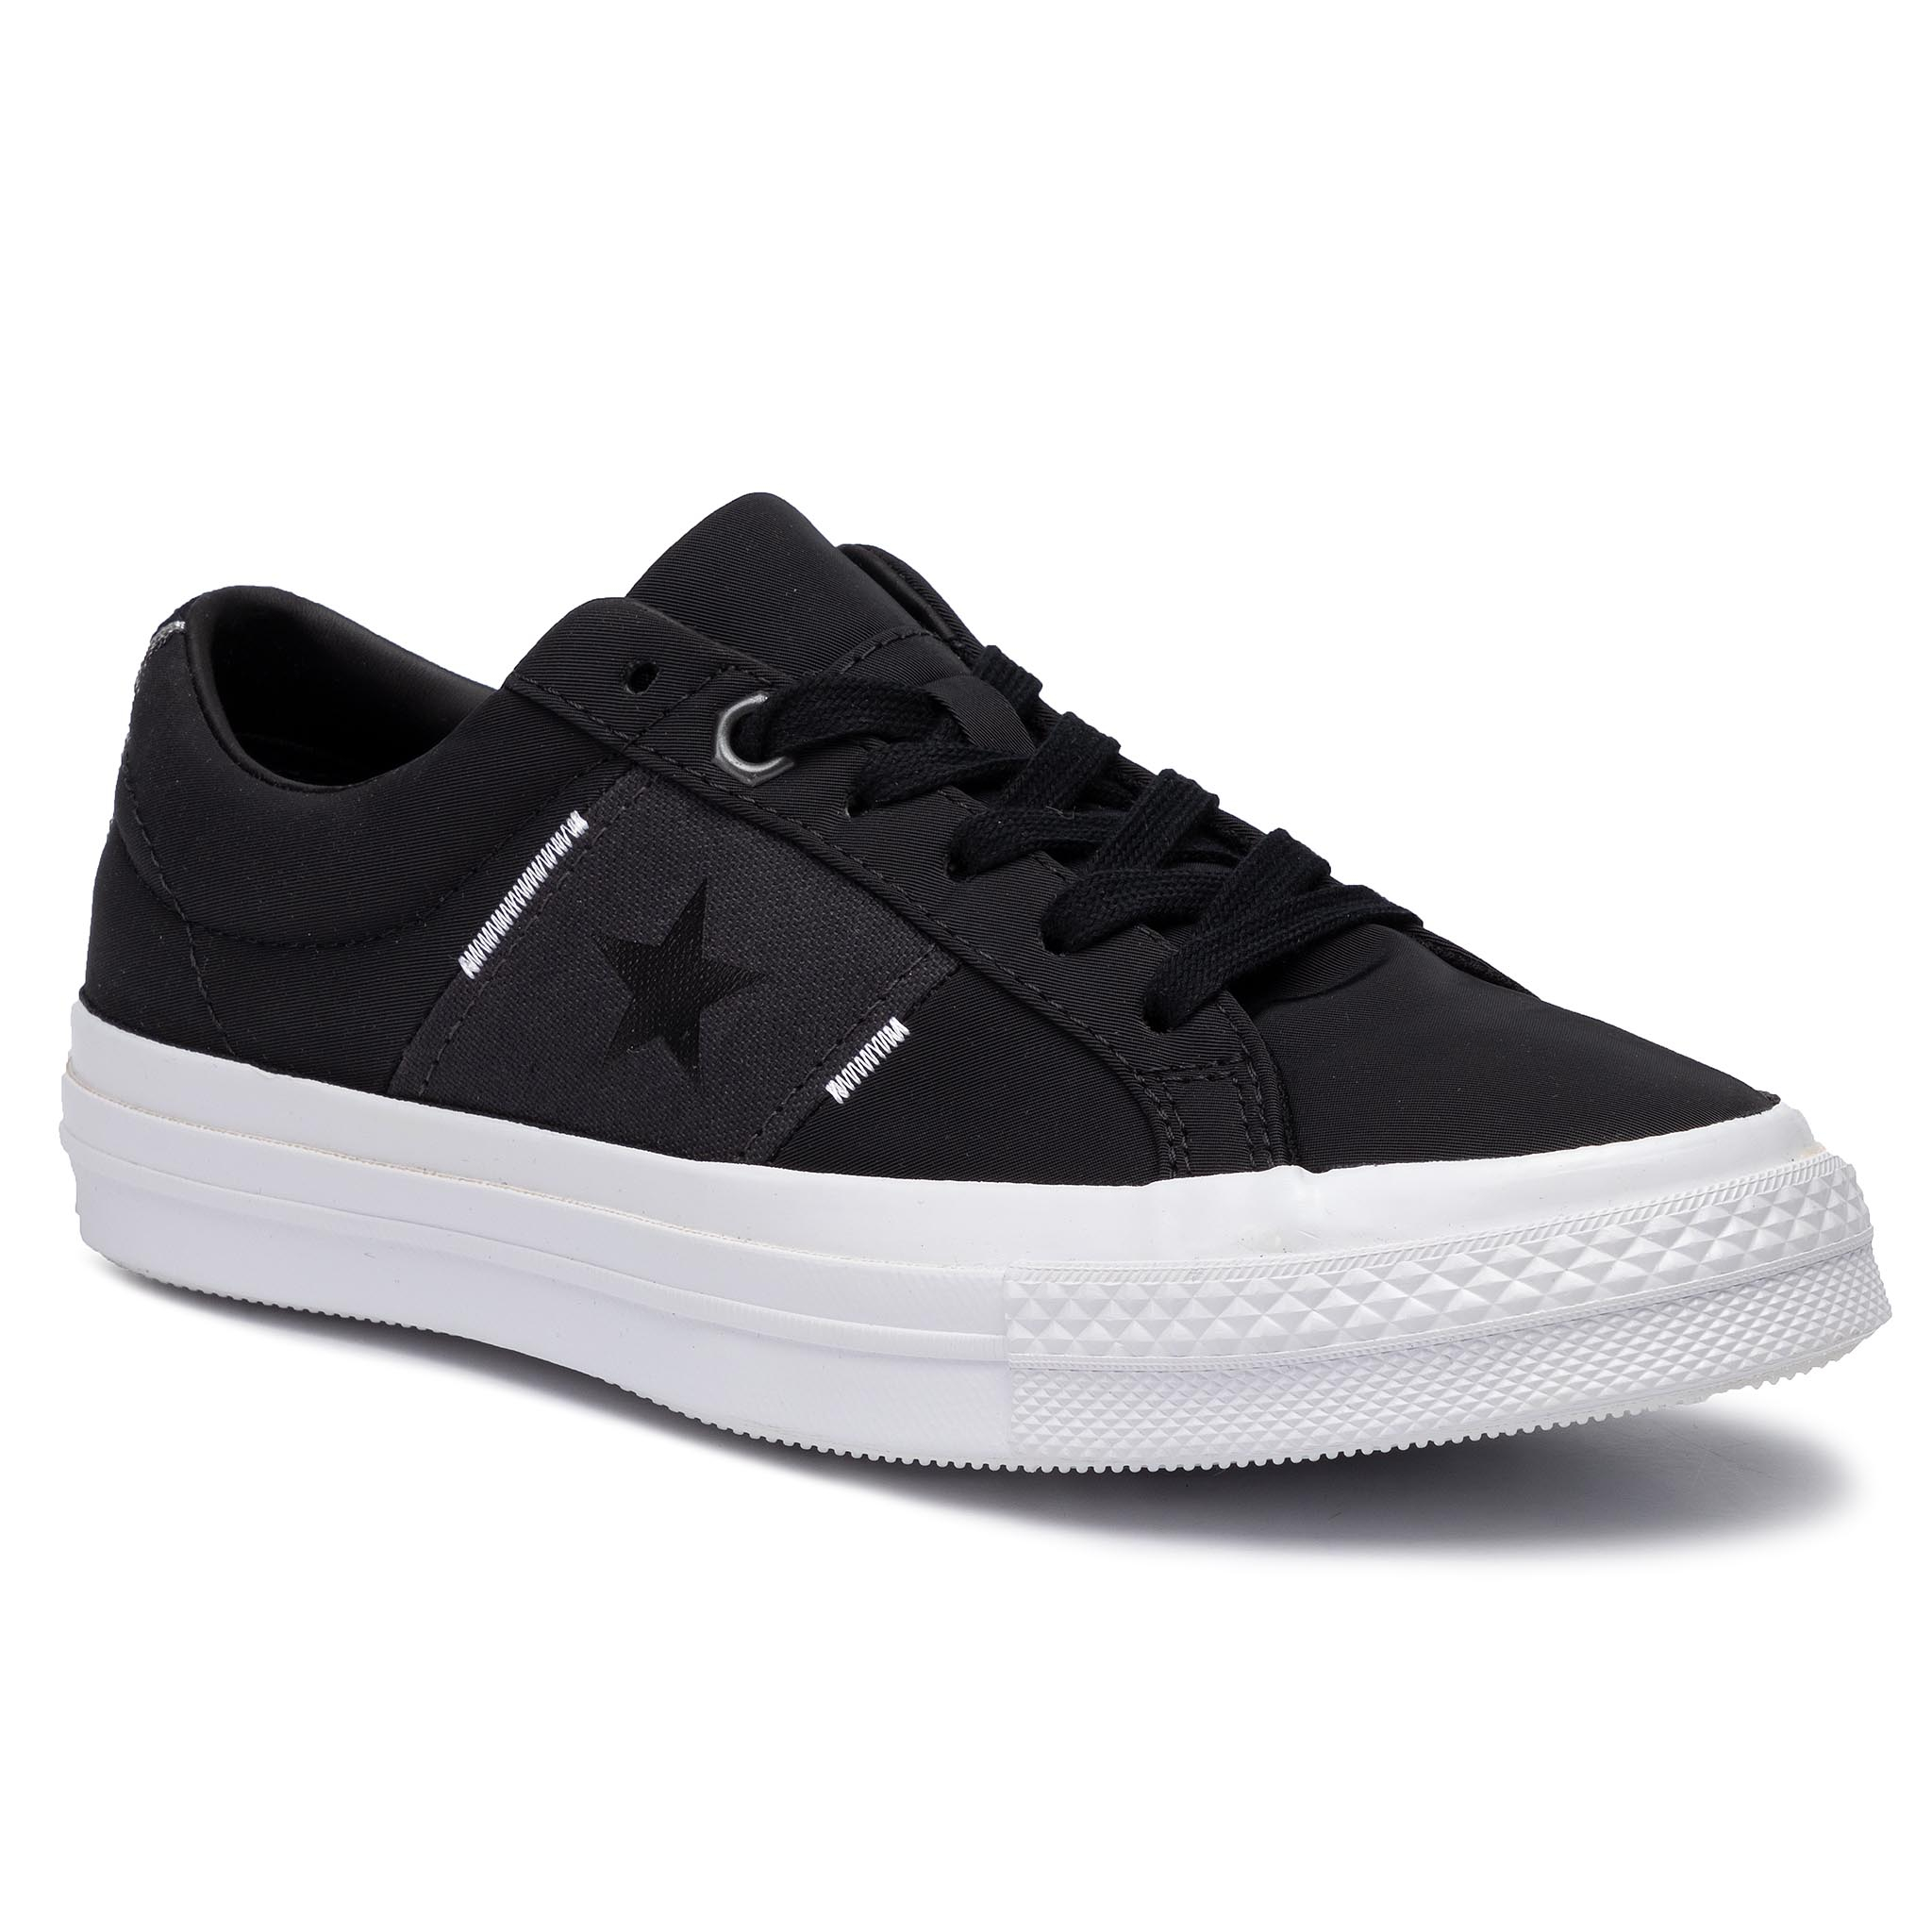 Teniși Converse - One Star Ox 165059c Black/Almost Black/White imagine epantofi.ro 2021